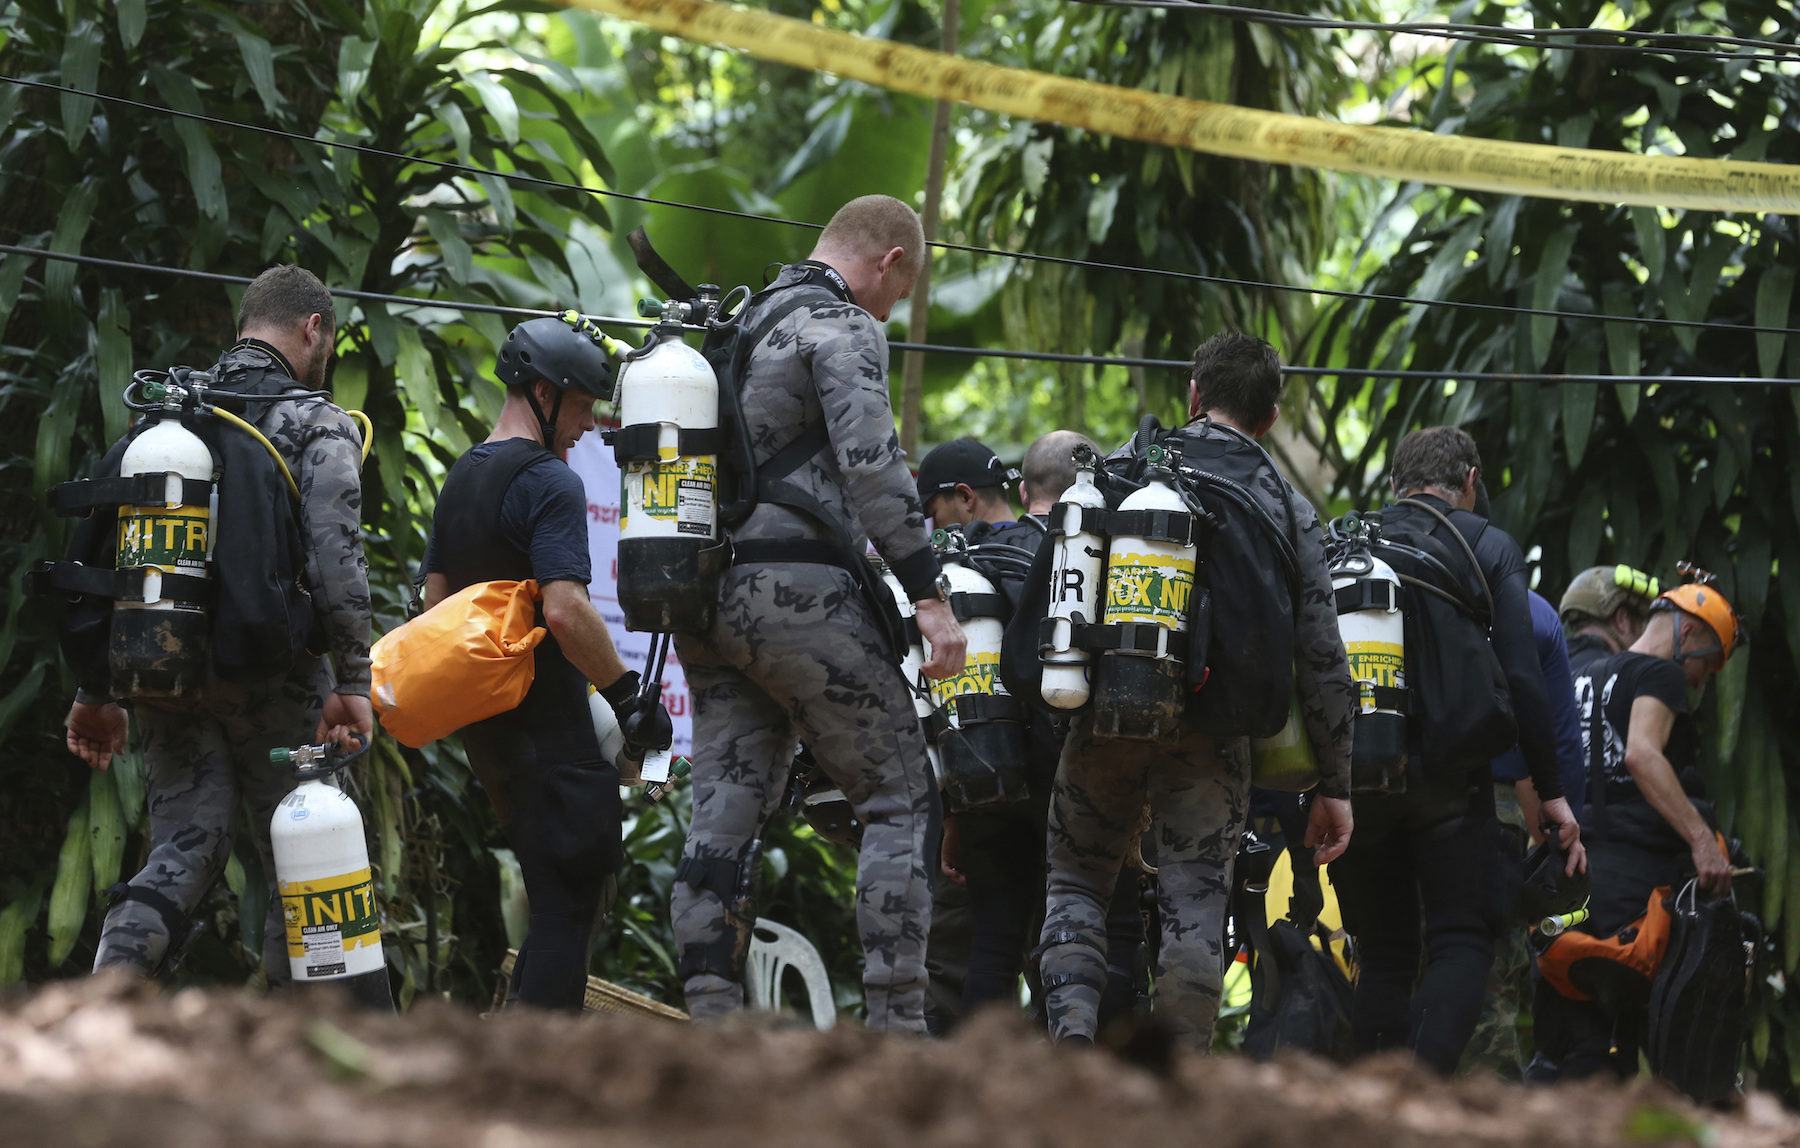 "<div class=""meta image-caption""><div class=""origin-logo origin-image ap""><span>AP</span></div><span class=""caption-text"">International rescuers team prepare walk in of a cave where a young soccer team and their coach are believed to be missing, Thursday, July 5, 2018. (AP Photo/Sakchai Lalit)</span></div>"